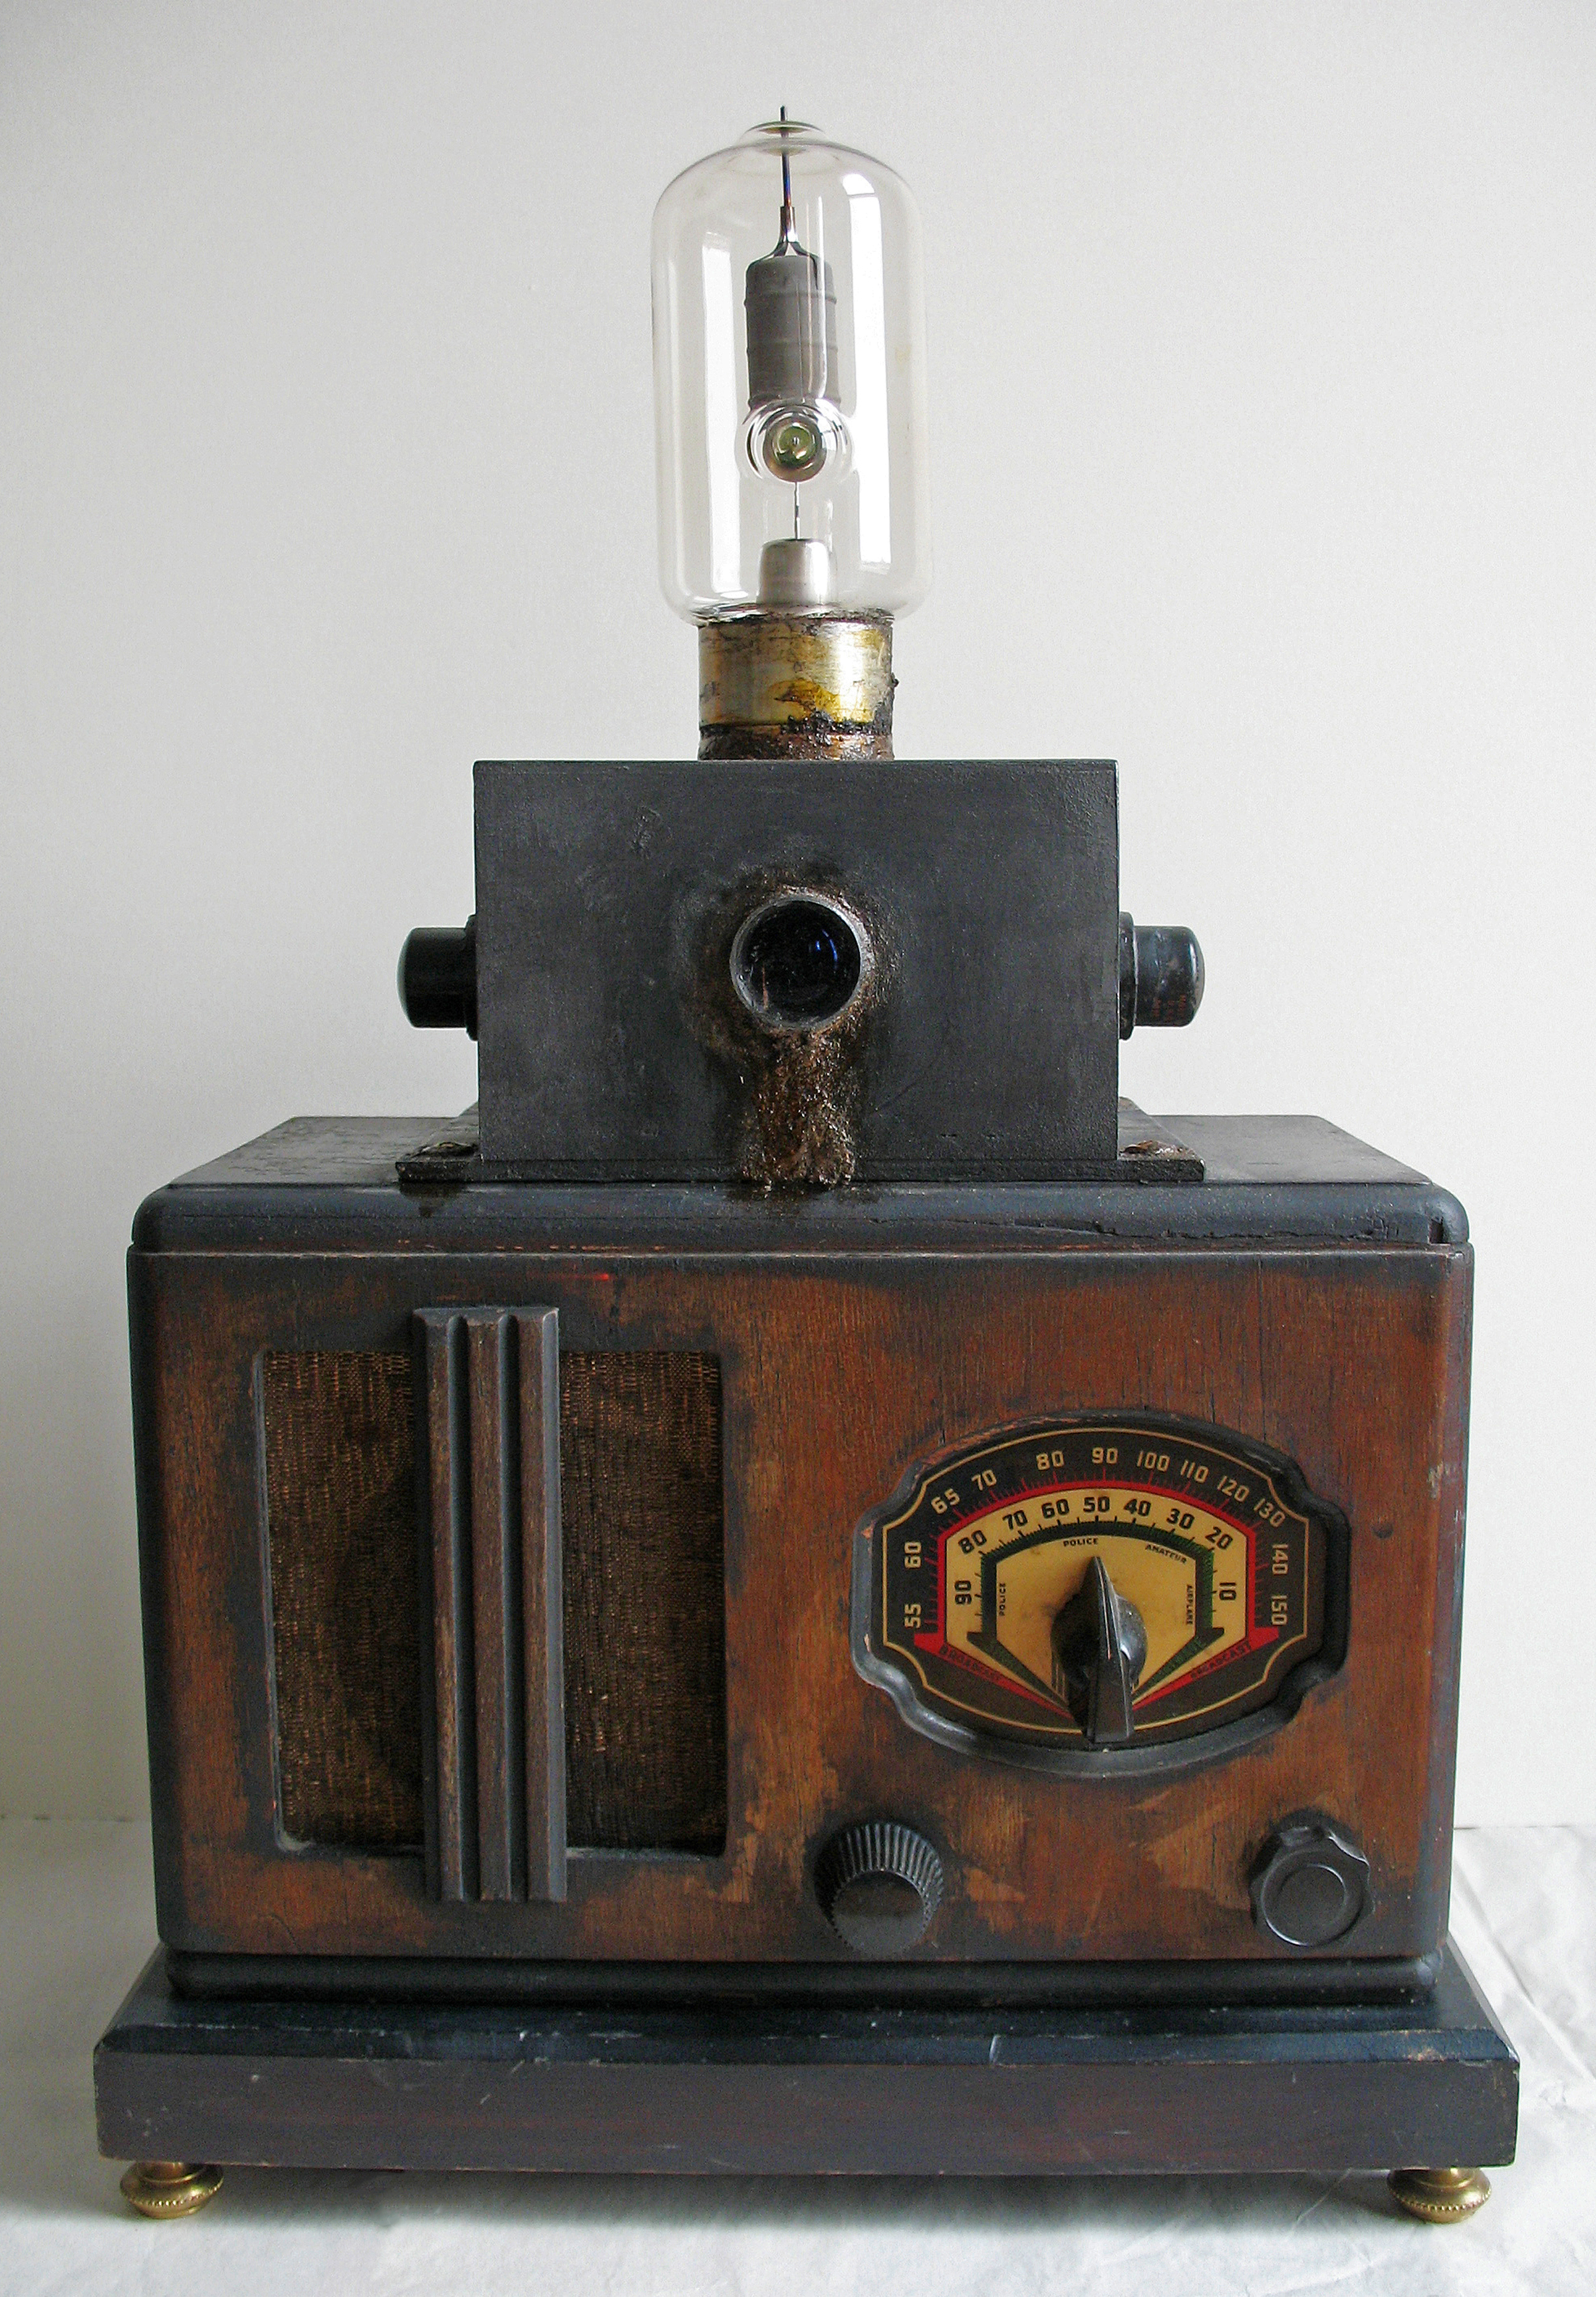 Renée Stout 2014 A construction featuring a found radio body, found technological parts, wood, paint, soil, graphite and mixed media 19 x 12.8 x 7 in (48.3 x 32.5 x 17.8 cm) 2021 Marc Straus Gallery